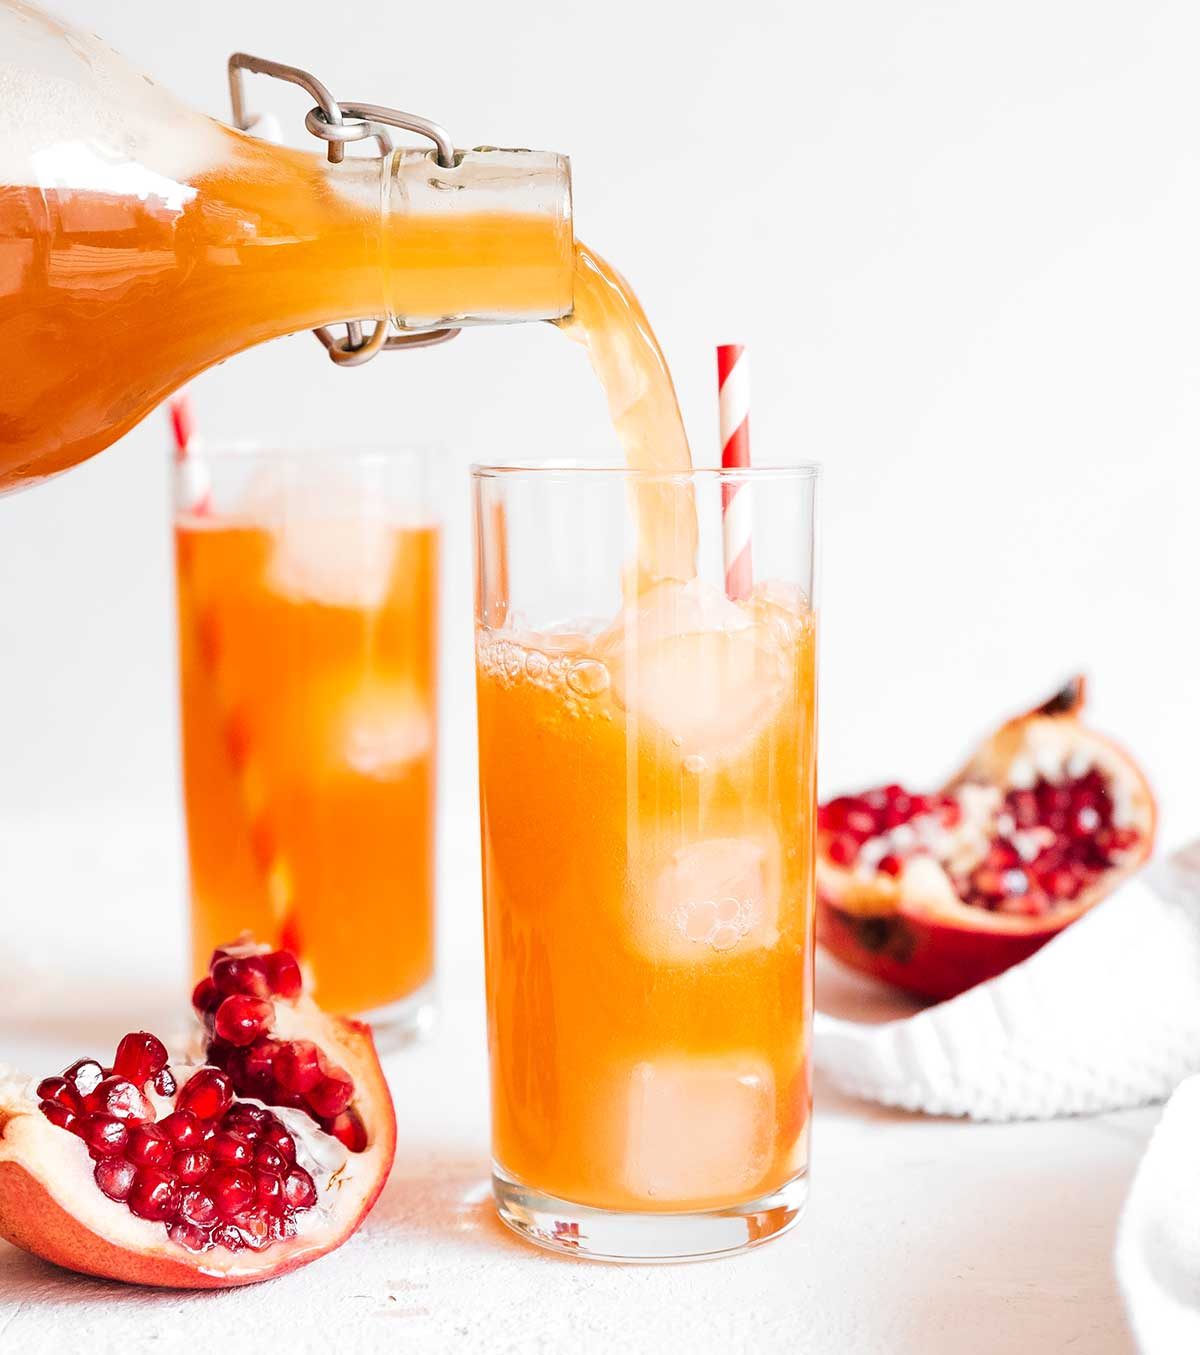 Pouring pomegranate kombucha in a glass on white background